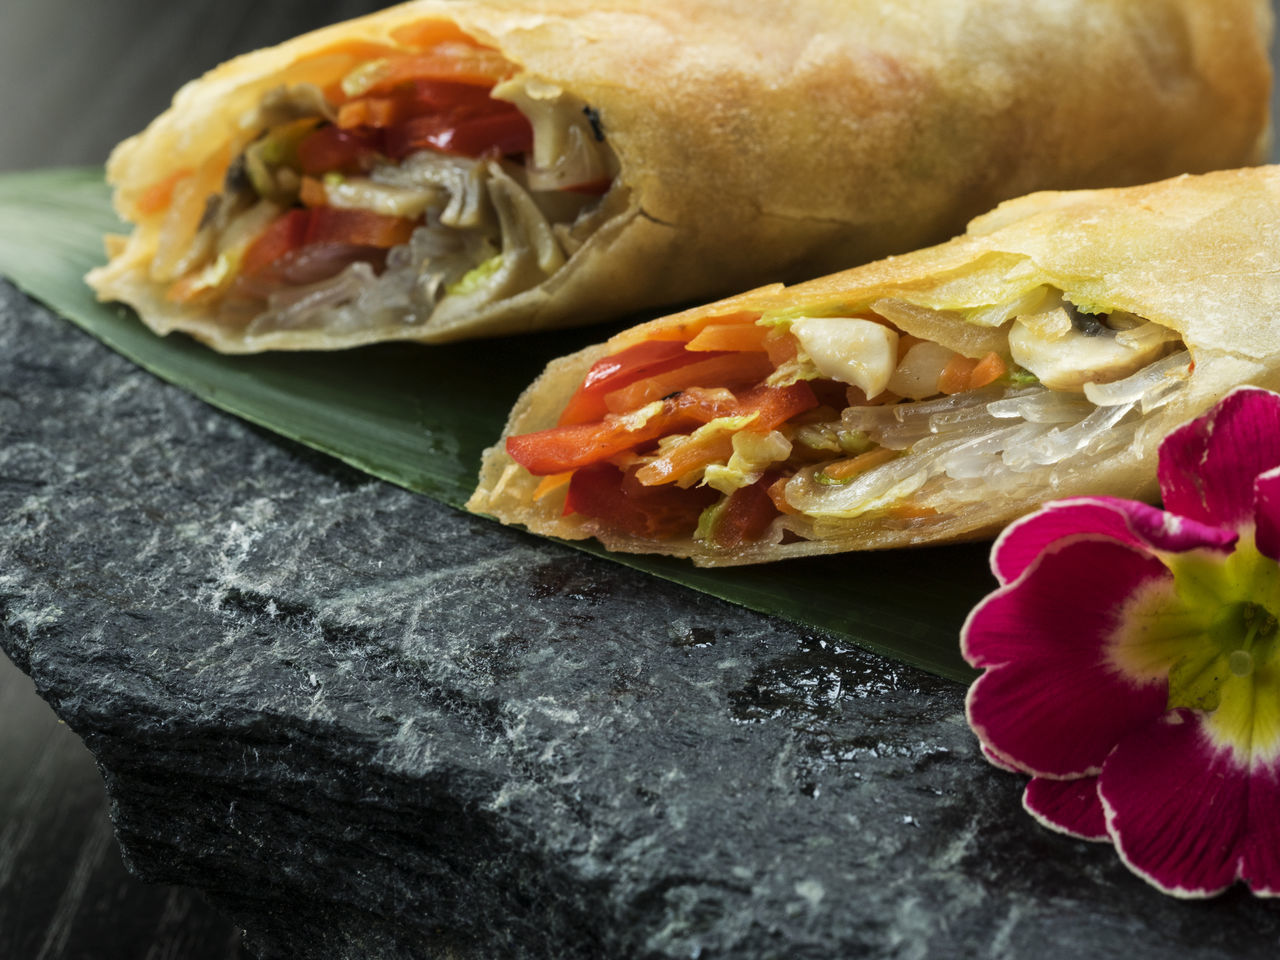 Asian-style Pancakes crunchy with vegetable filling, served on slate Asian  Asian-style Black Close-up Crunchy Day Fast Food Filling Flower Food Freshness No People Pancakes Ready-to-eat Red Sandwich Served Slate Stone Style Unhealthy Eating Vegan Vegetable Vegeterian